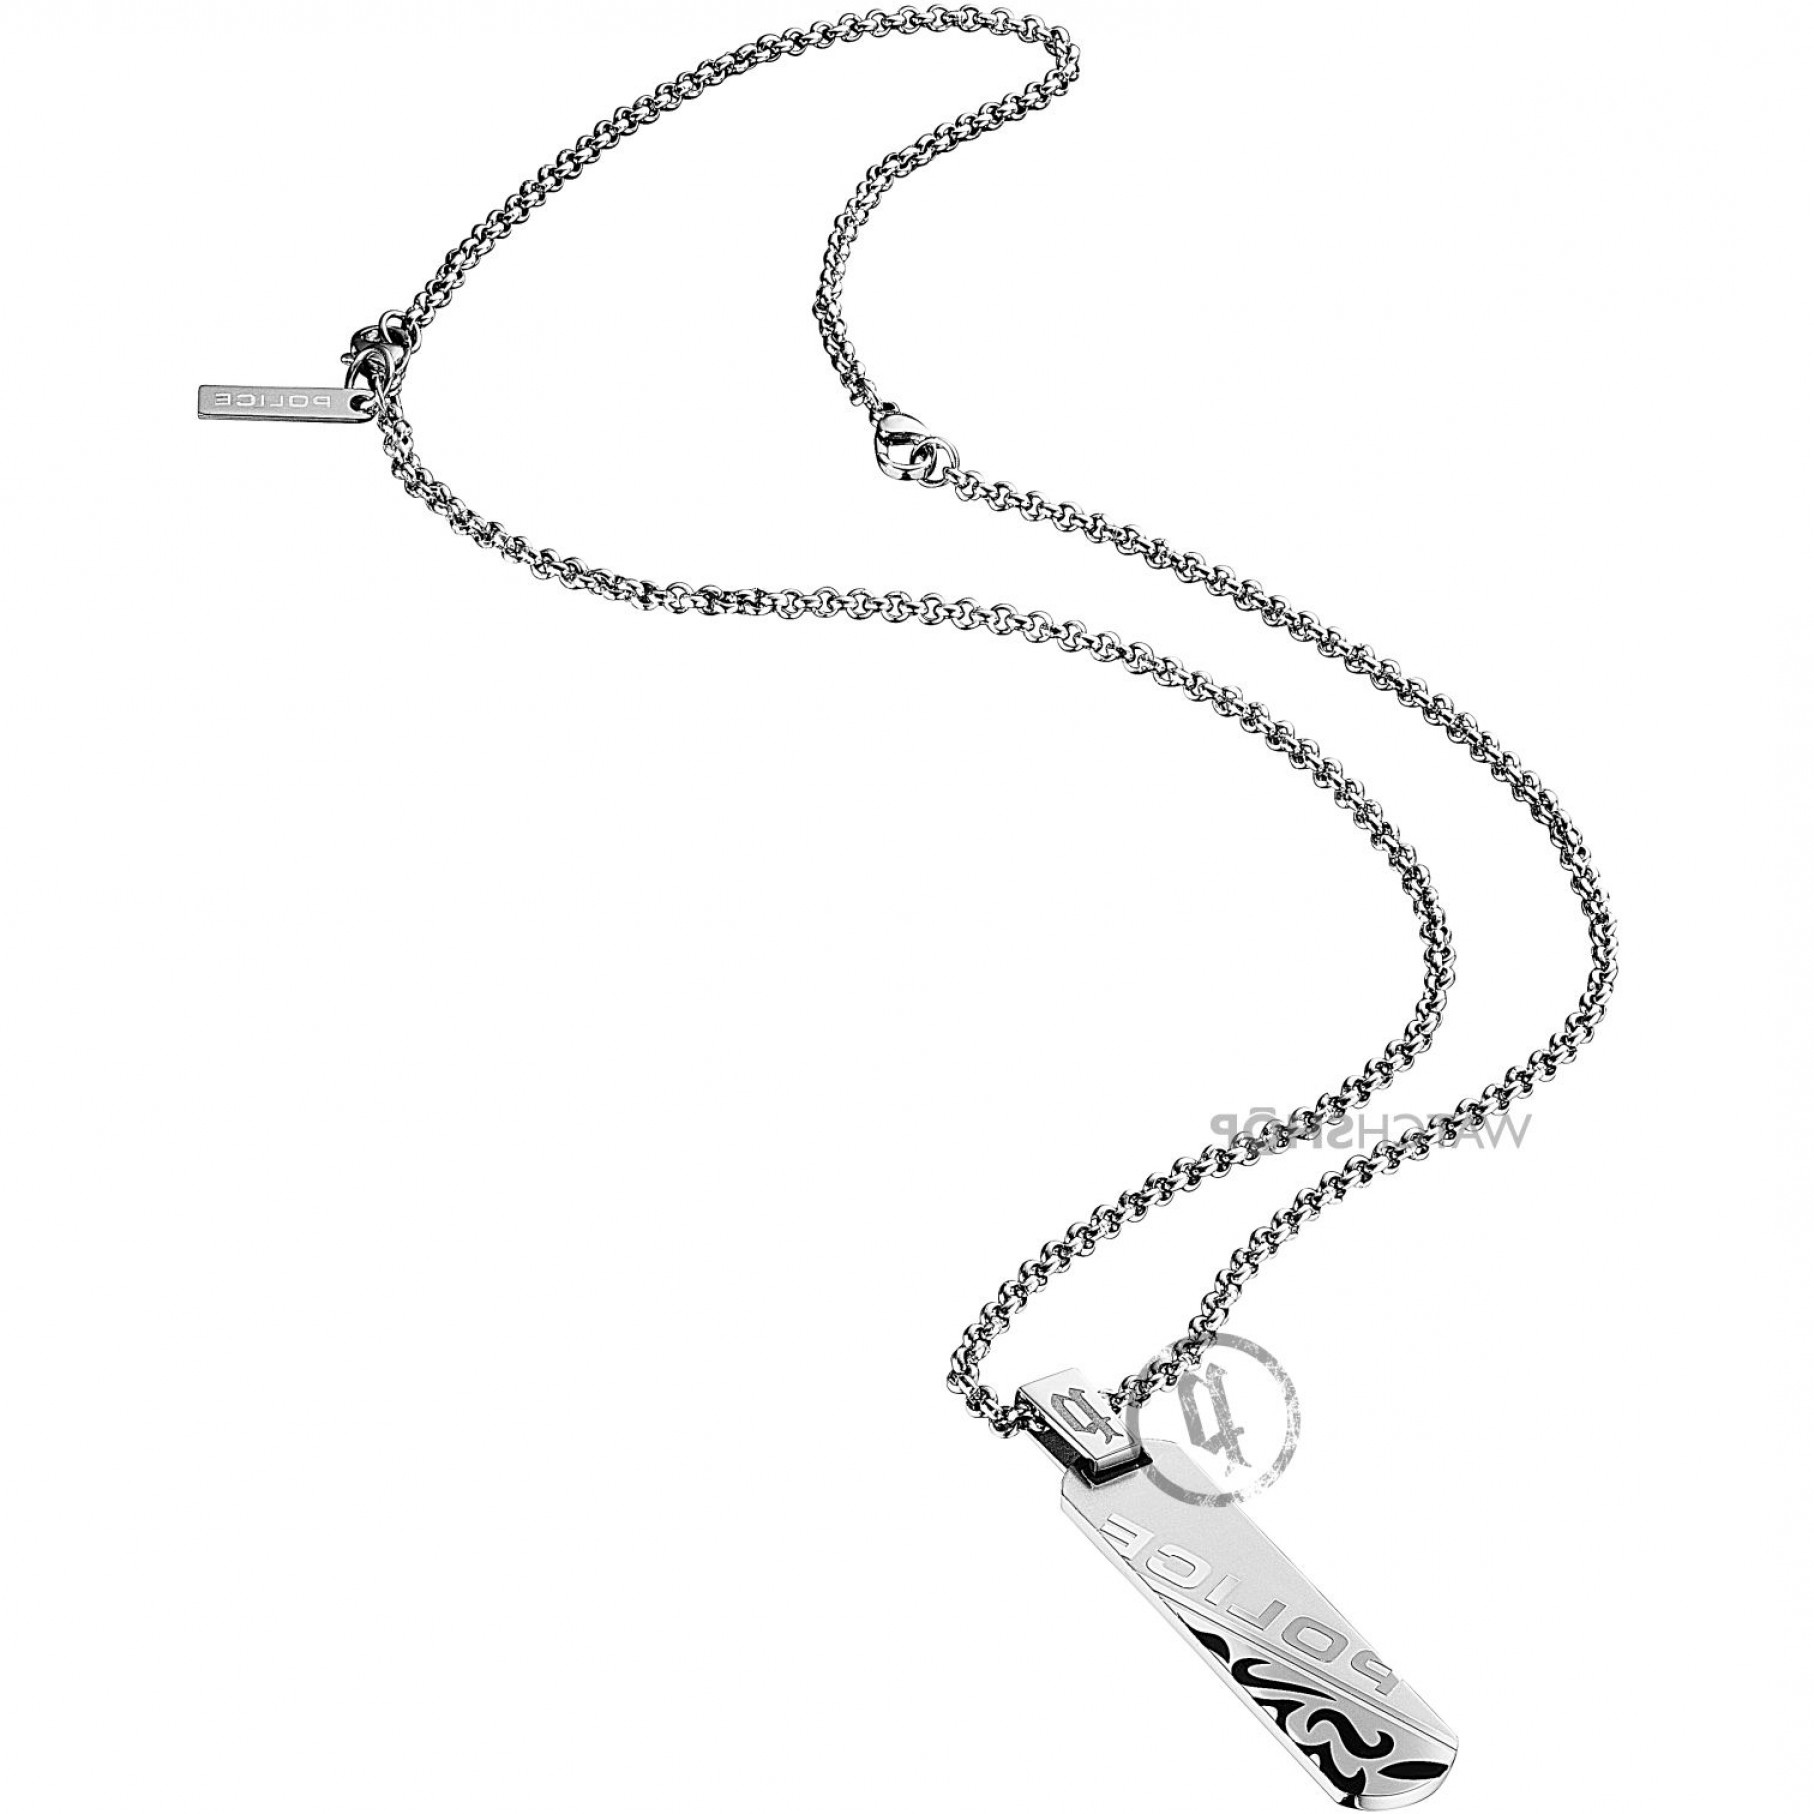 1814x1814 Mens Police Stainless Steel Duality Necklace Psb P Ksvhs Jewellery